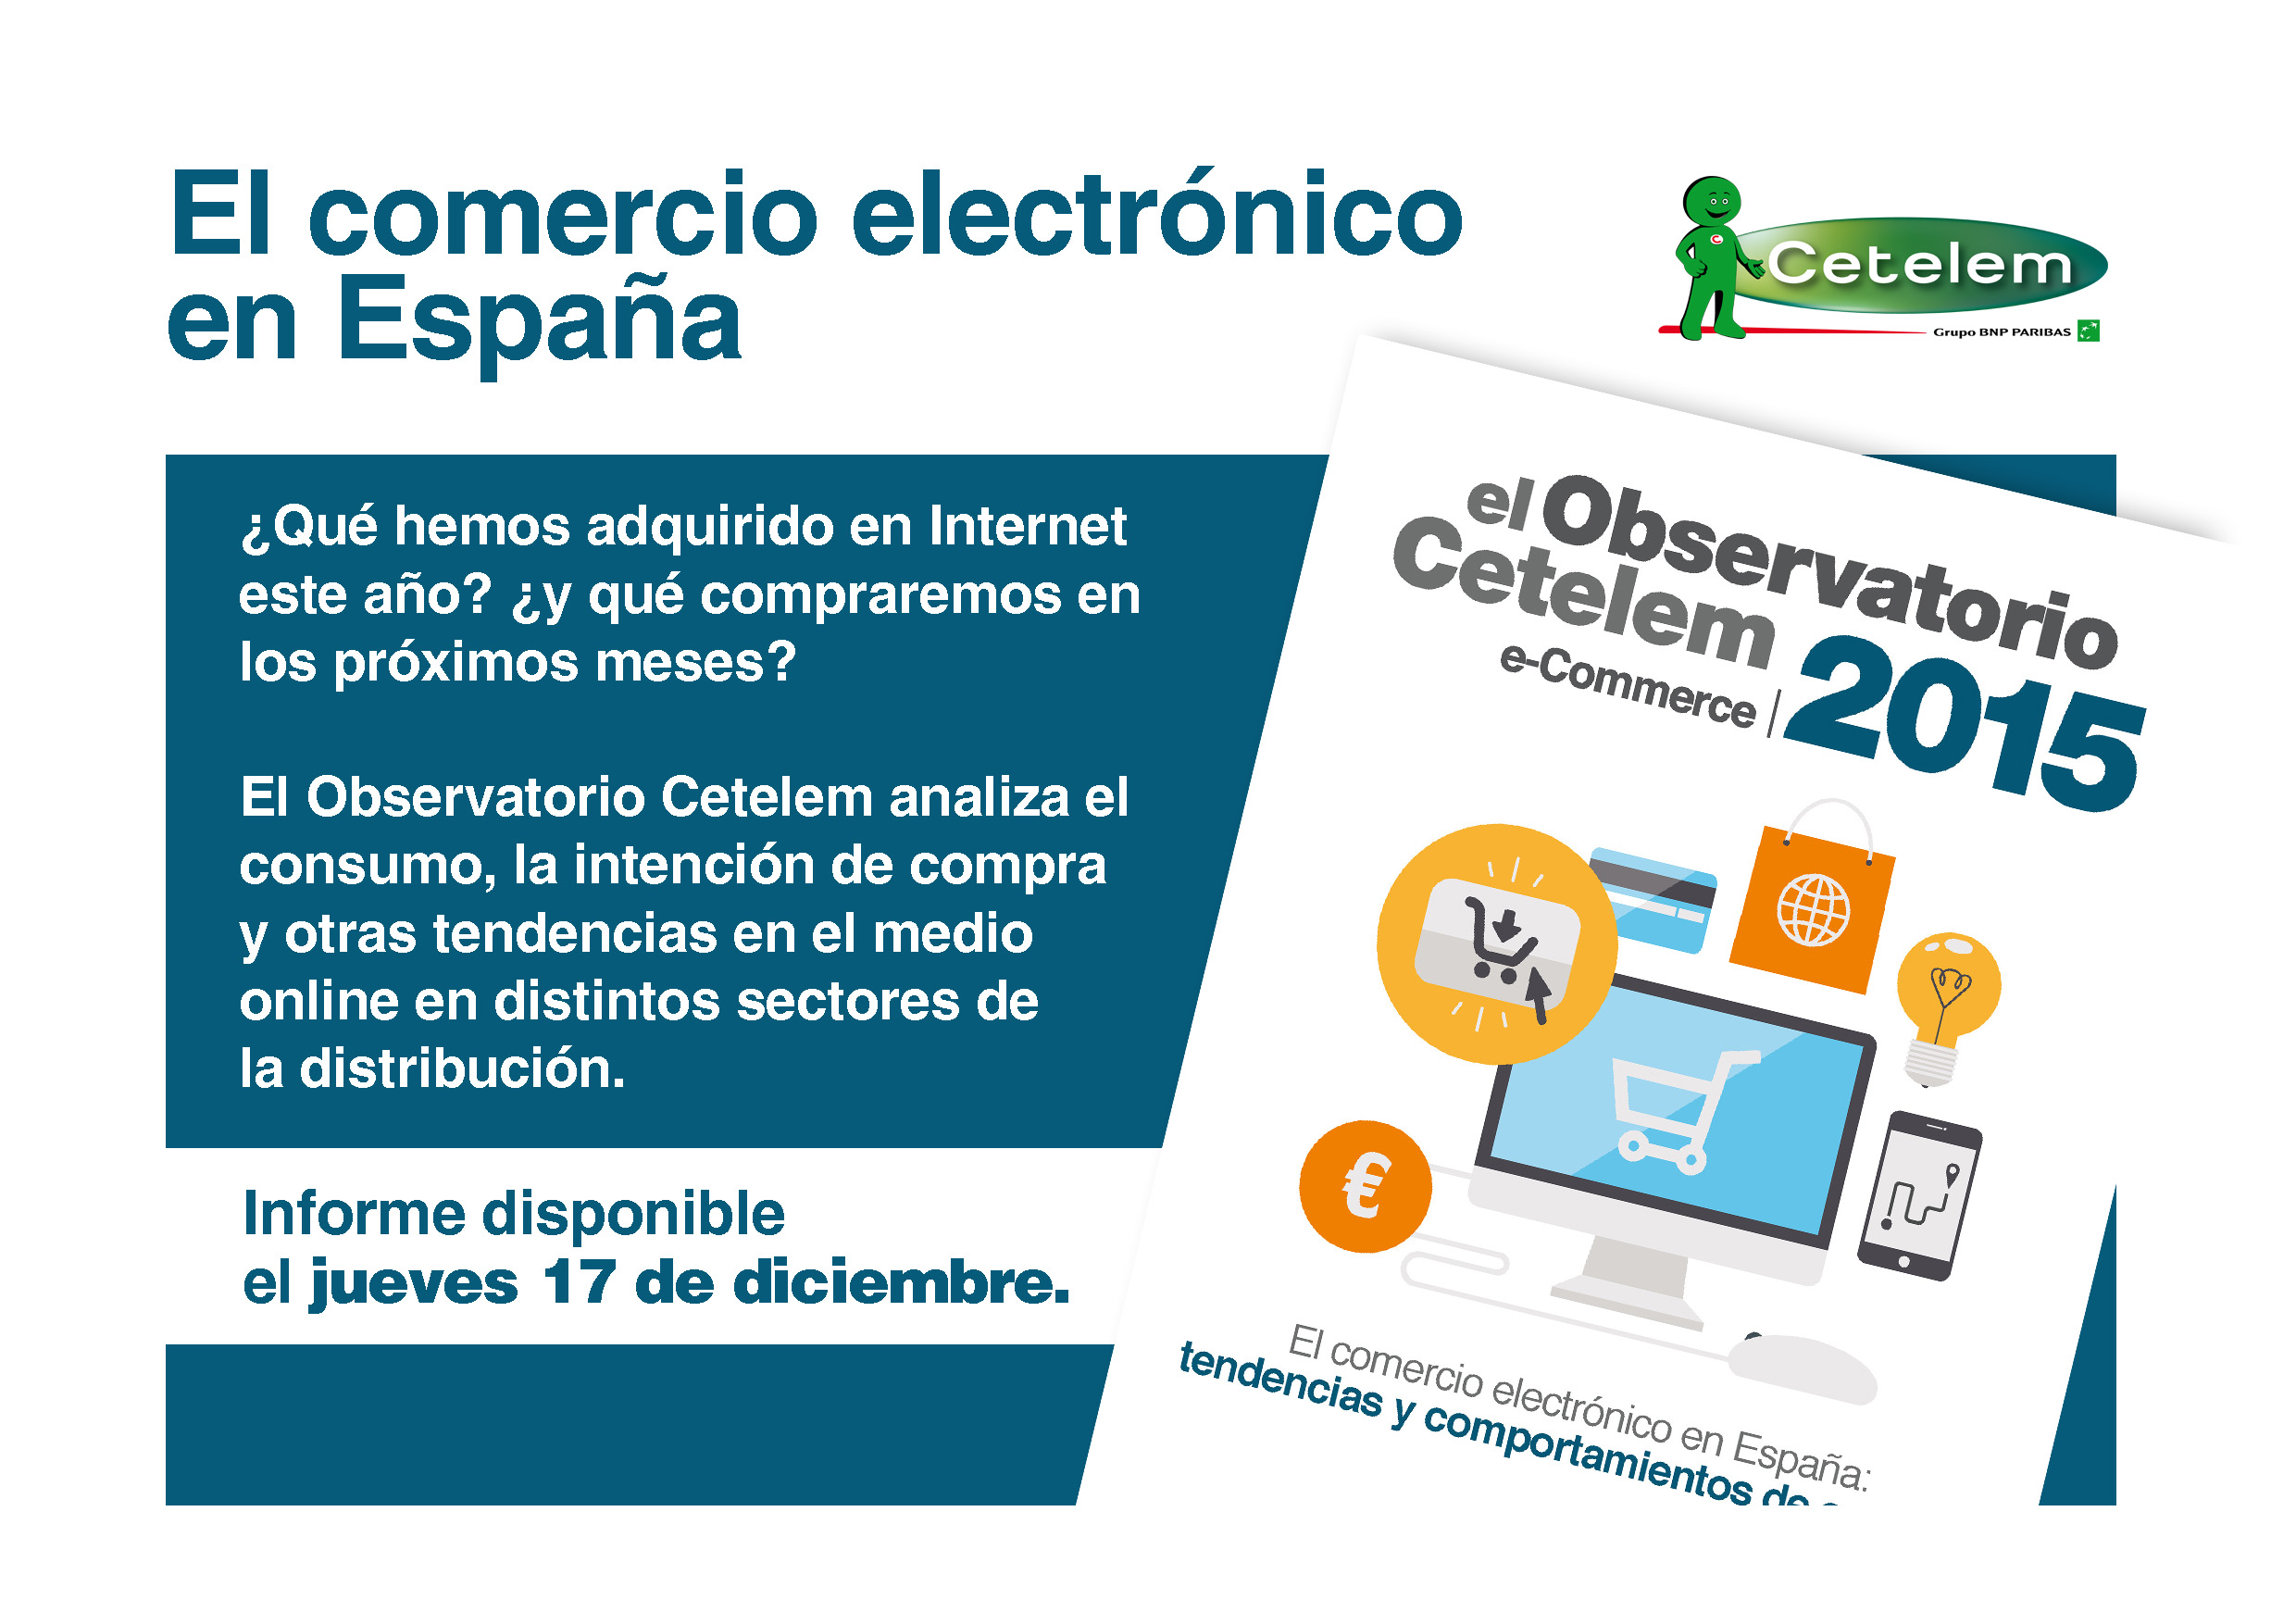 Observatorio Cetelem e-Commerce